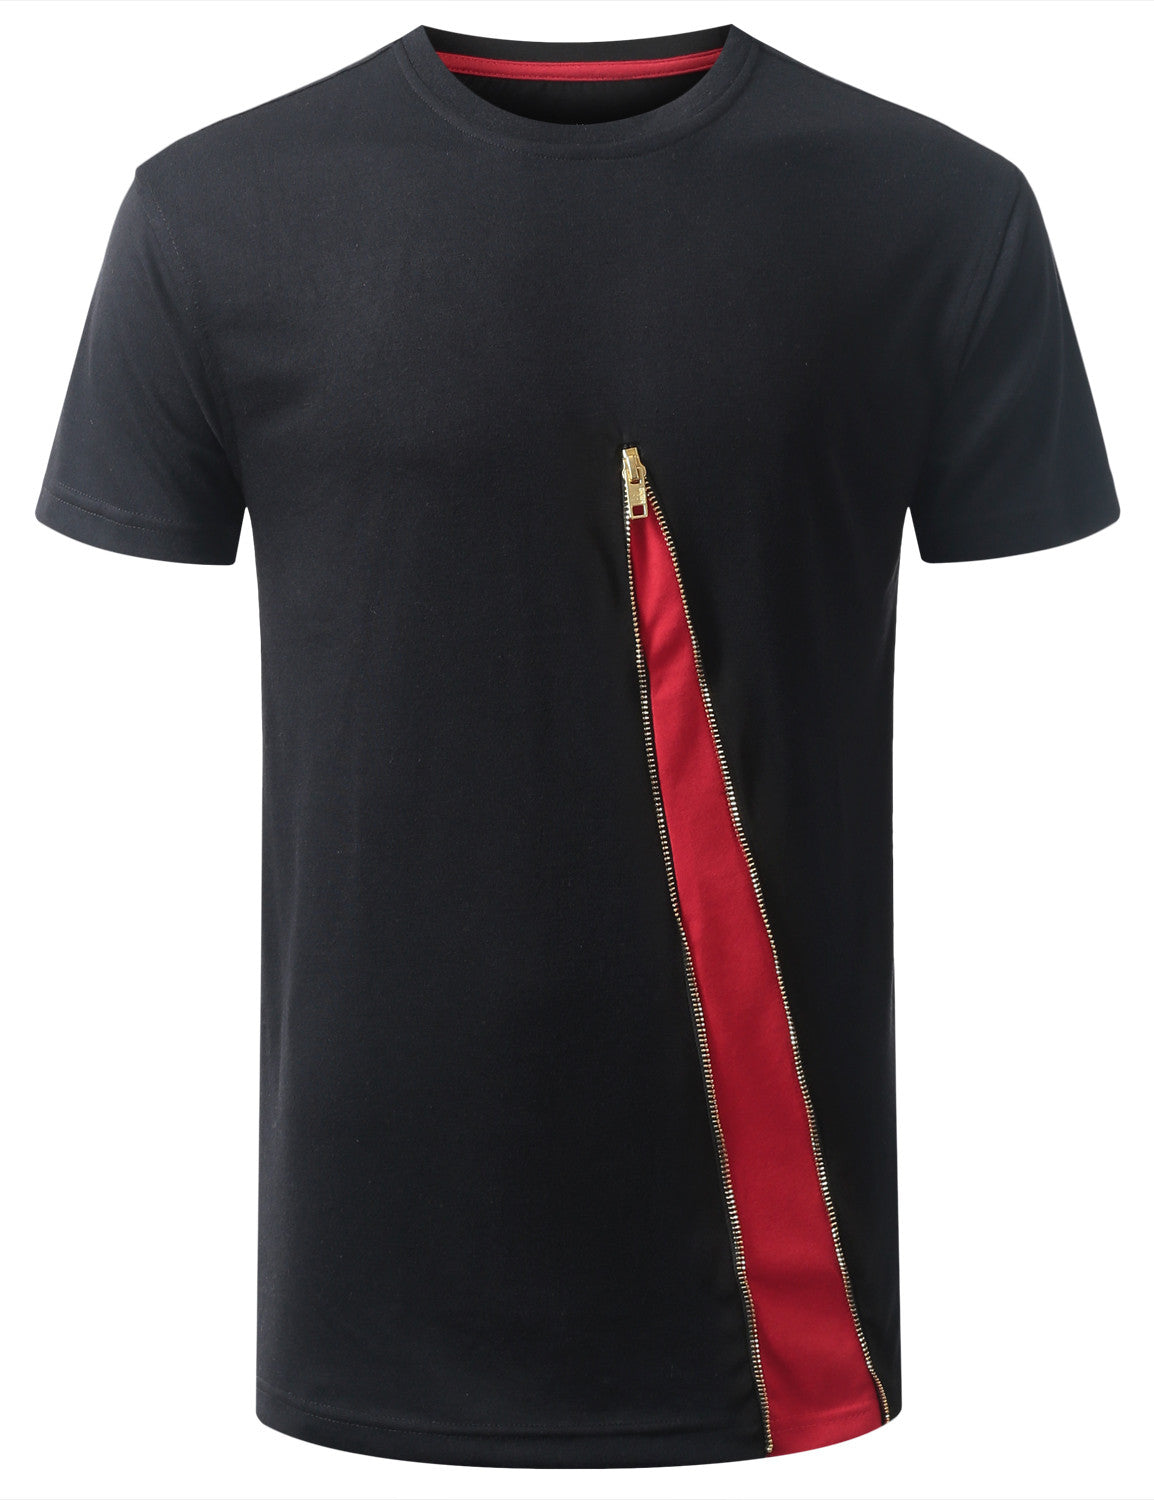 BLACKRED BASIC ZIP TSHIRTS